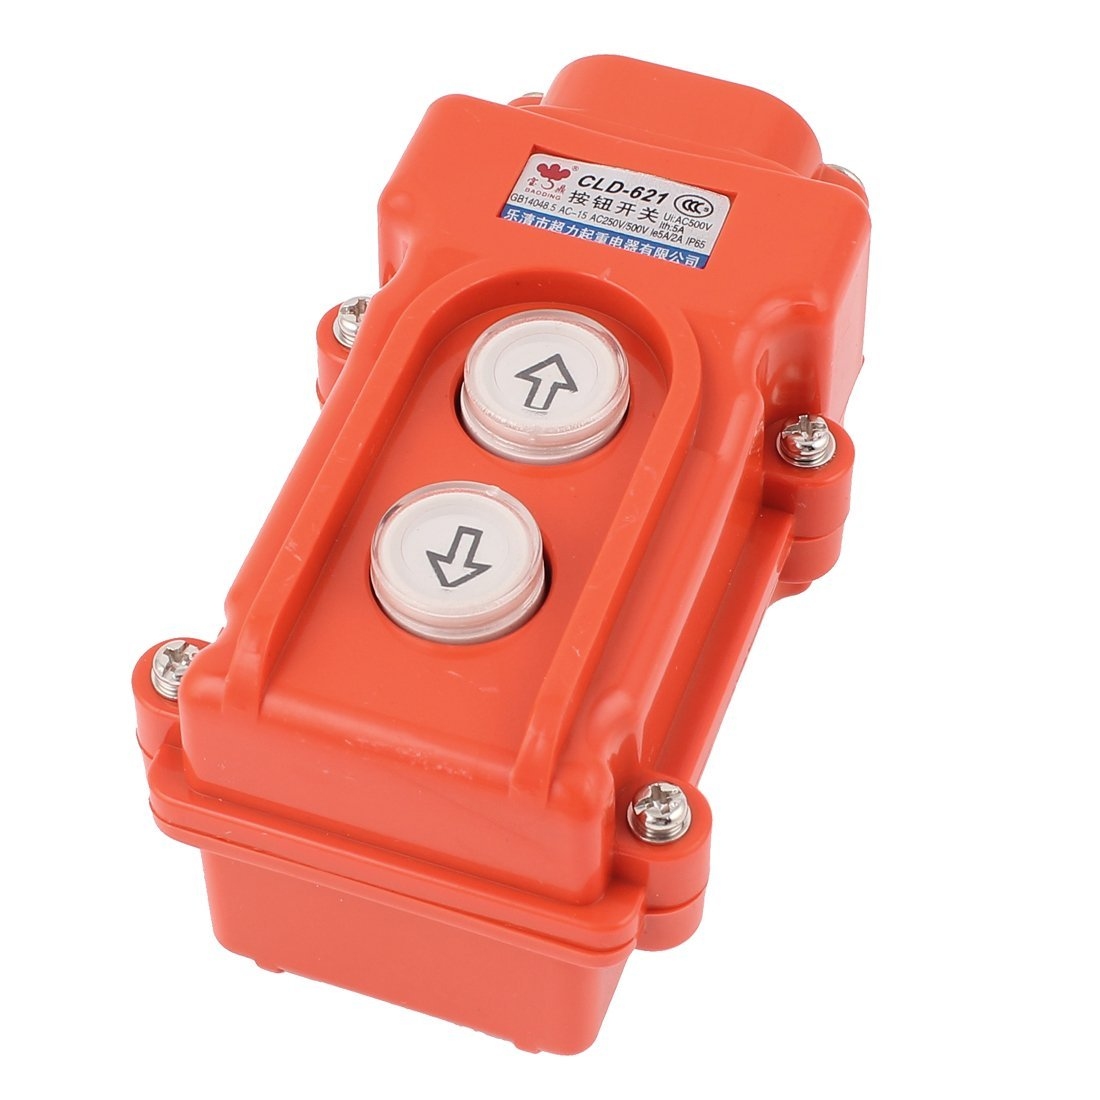 uxcell AC 500V 5A Hoist Crane Pendant Up-Down Rain Proof Pushbutton Switch